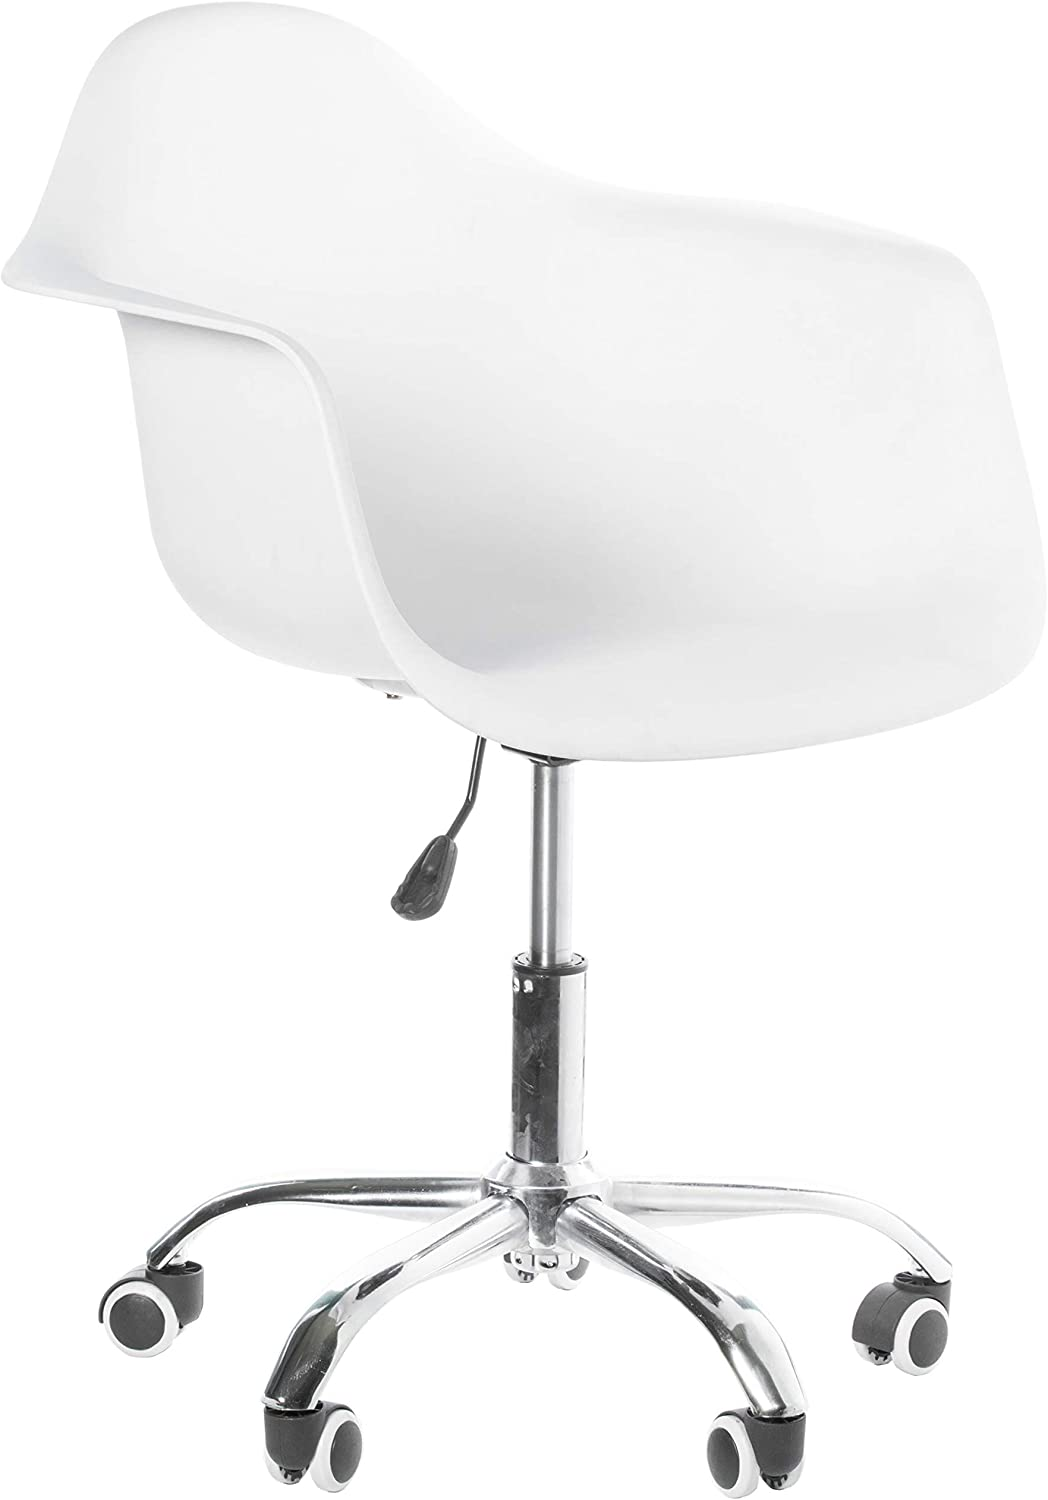 Bold Tones Mid-Century Modern Style Swivel Plastic Shell Molded Office Task Chair with Rolling Wheels, White, 1